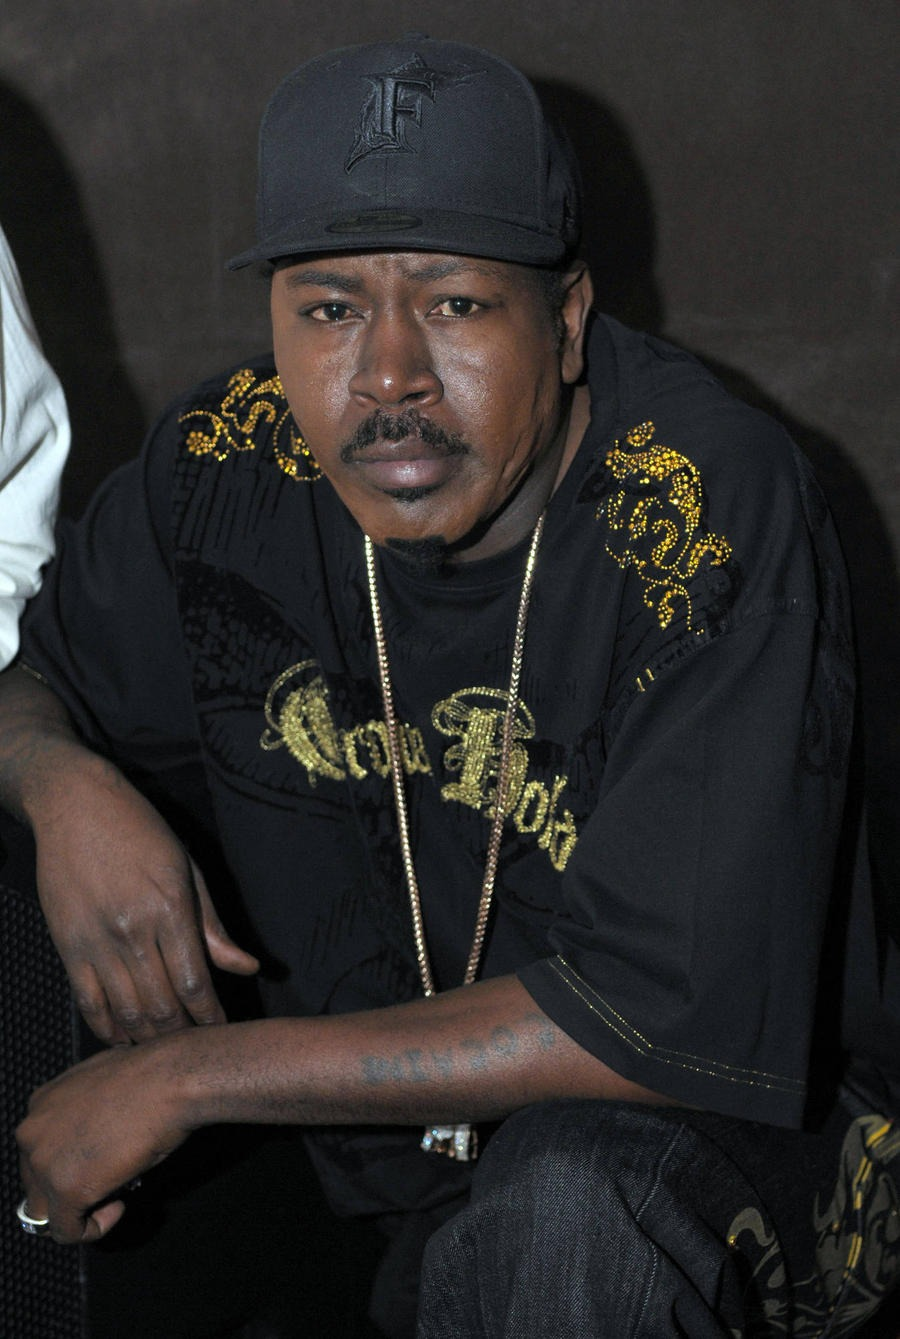 Trick Daddy is wearing all black from his cap to t-shirt to pant.